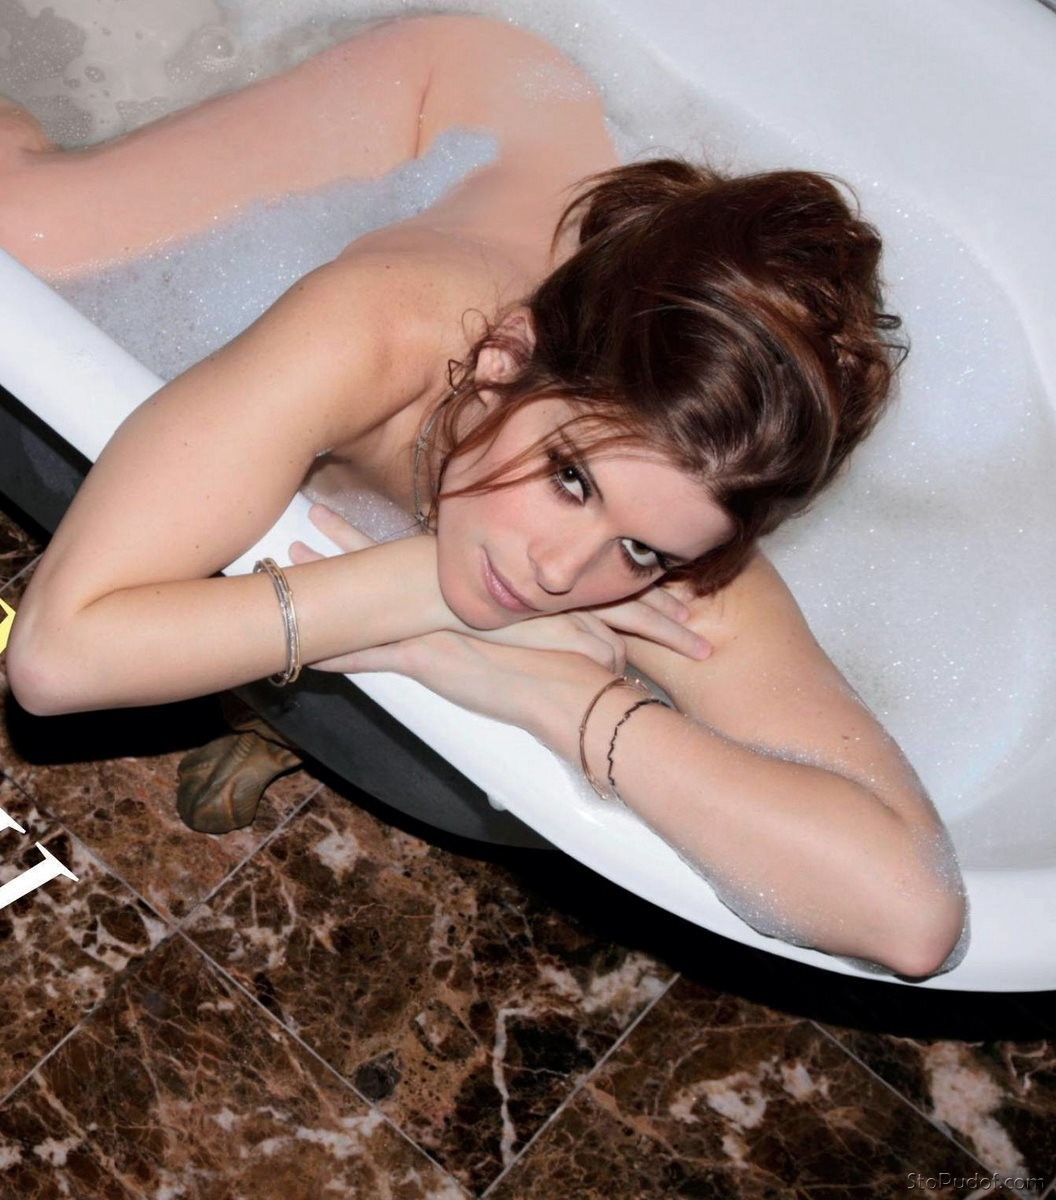 Kate Mara naked leak pictures - UkPhotoSafari